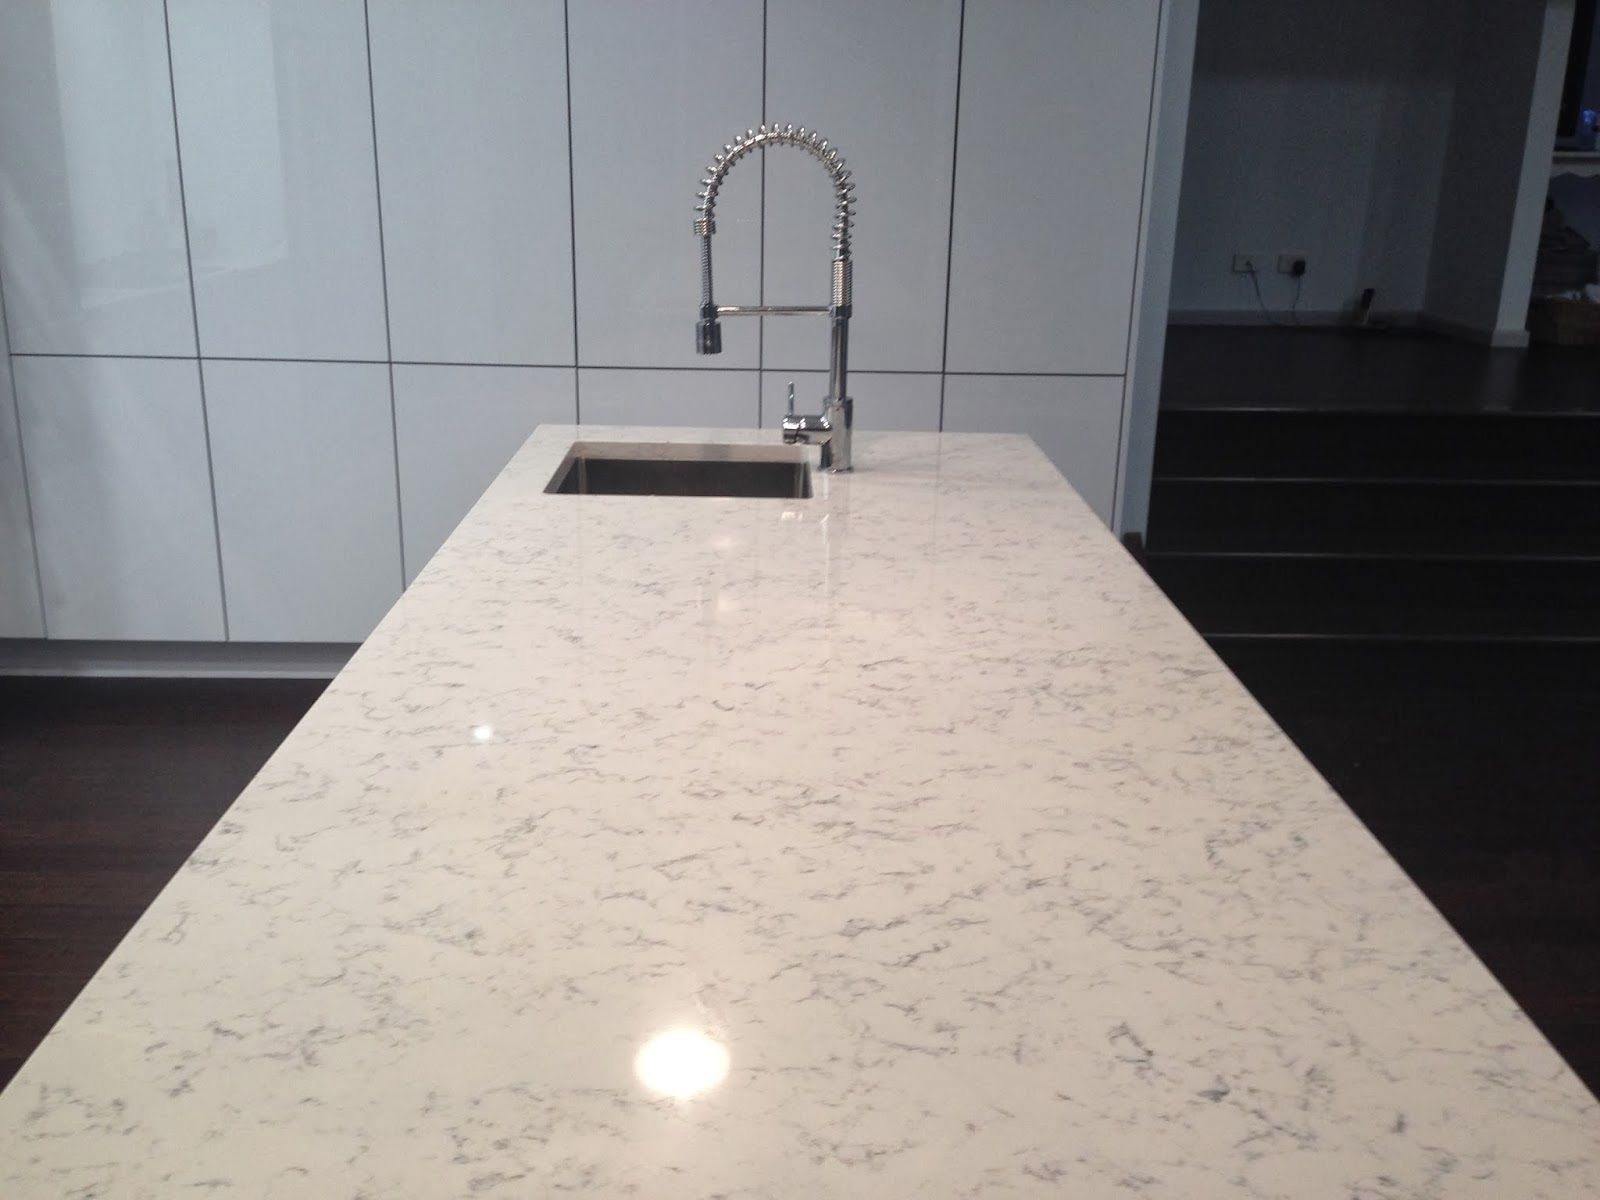 quartz countertop slabs pink quartz marble quartz countertop white slab silestone lyra open plan kitchen kitchen ideas bathroom